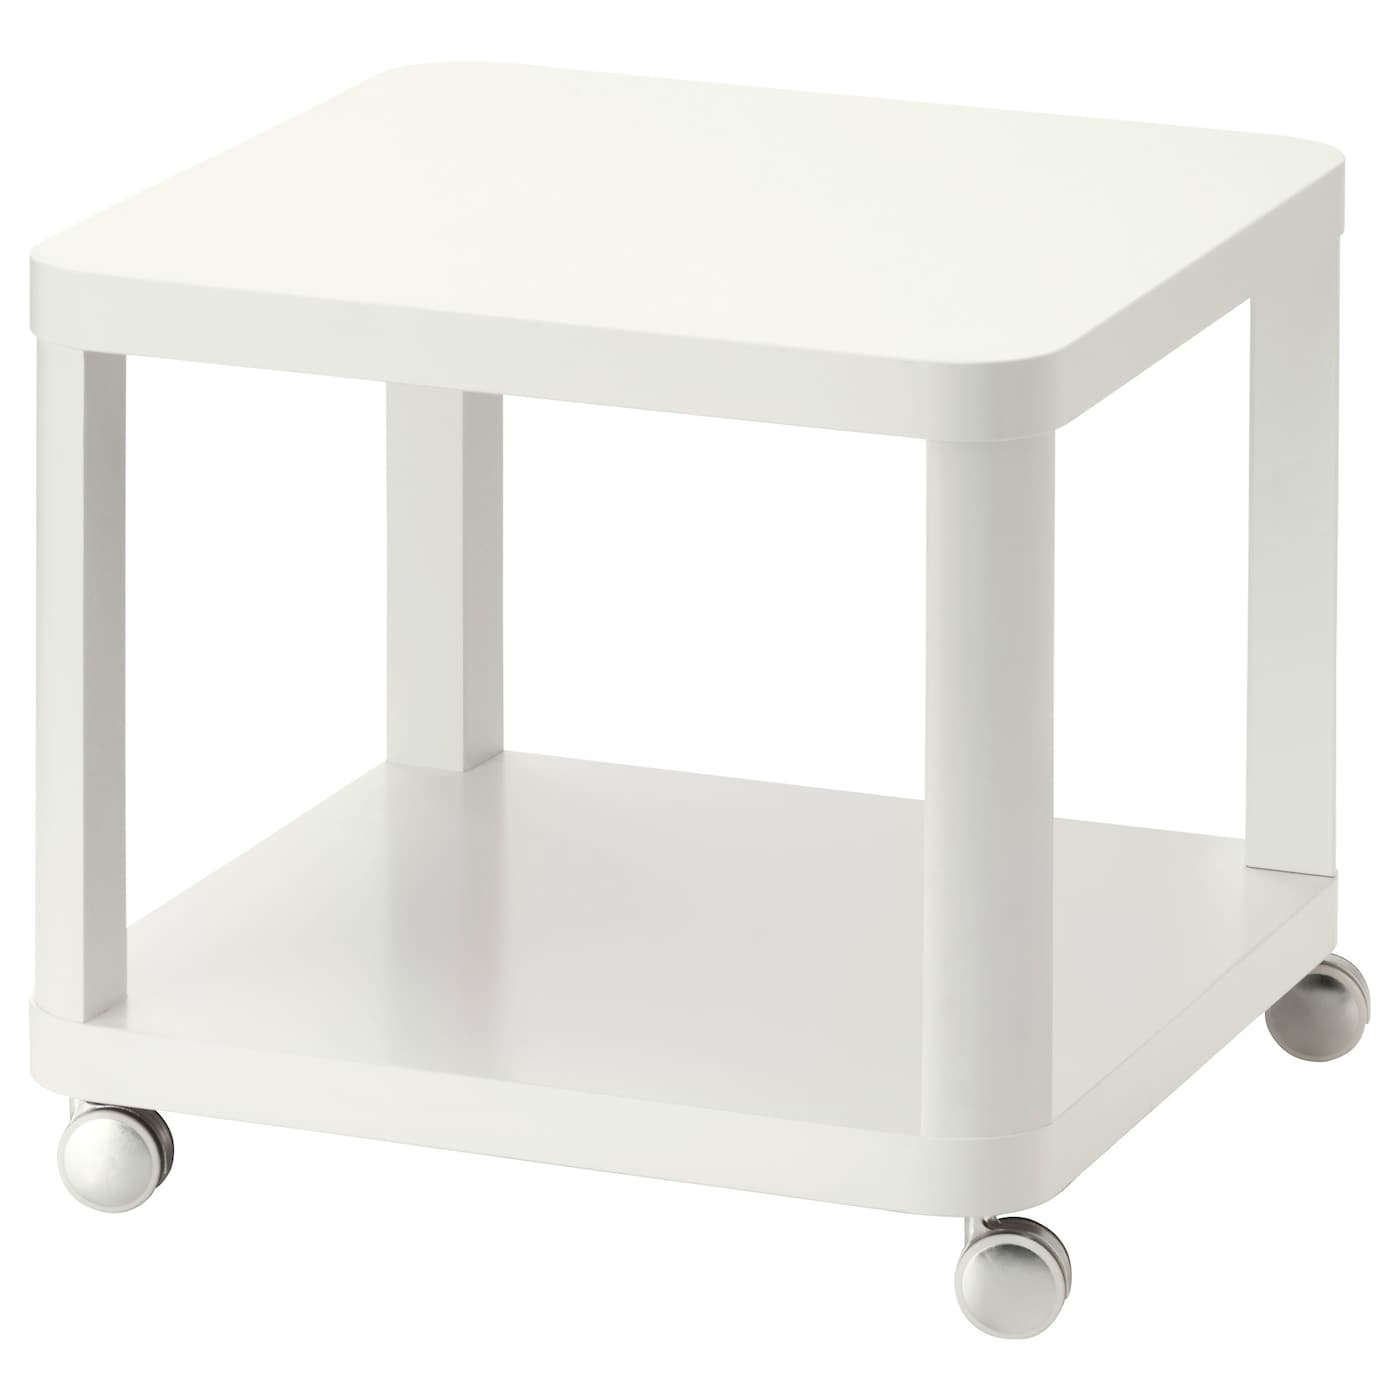 TINGBY Side table on castors White 50x50 cm IKEA